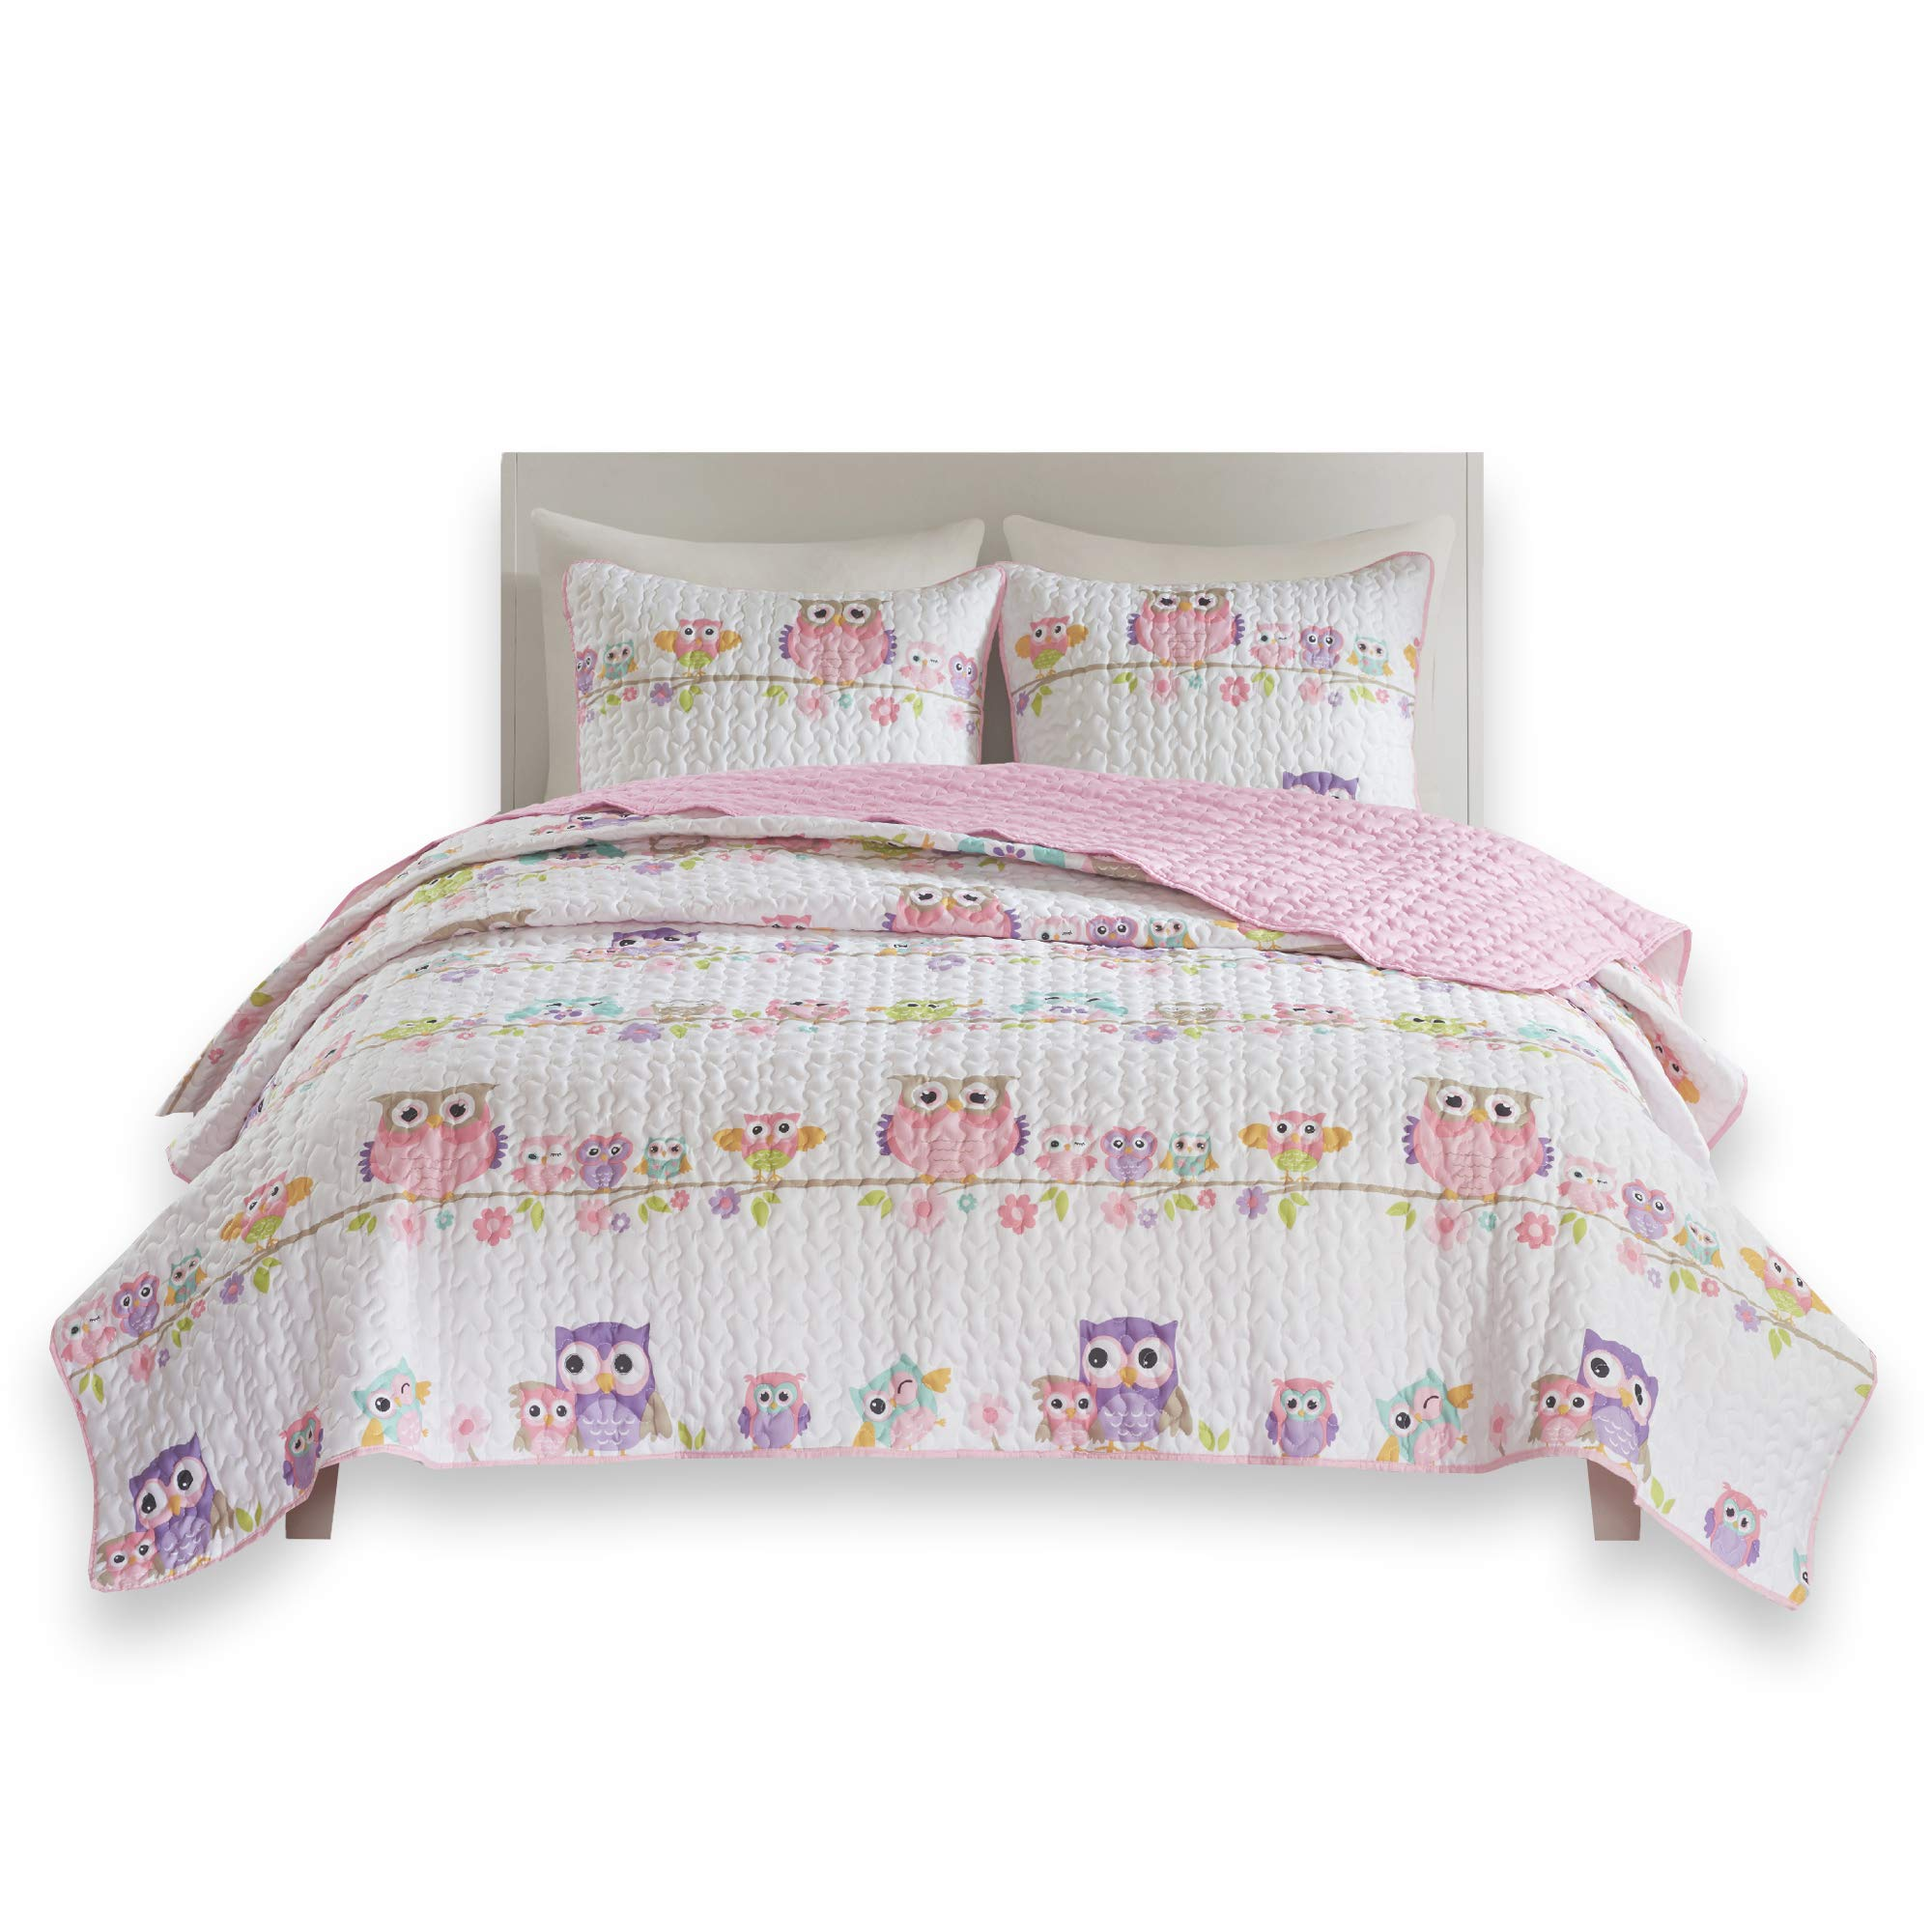 Comfort Spaces - Howdy Hoots Kids Bedspread Mini Quilt Set - 2 Piece - Pink White - Teens/Girls - Owl Print - Twin Size, Includes 1 Quilt, 1 Sham